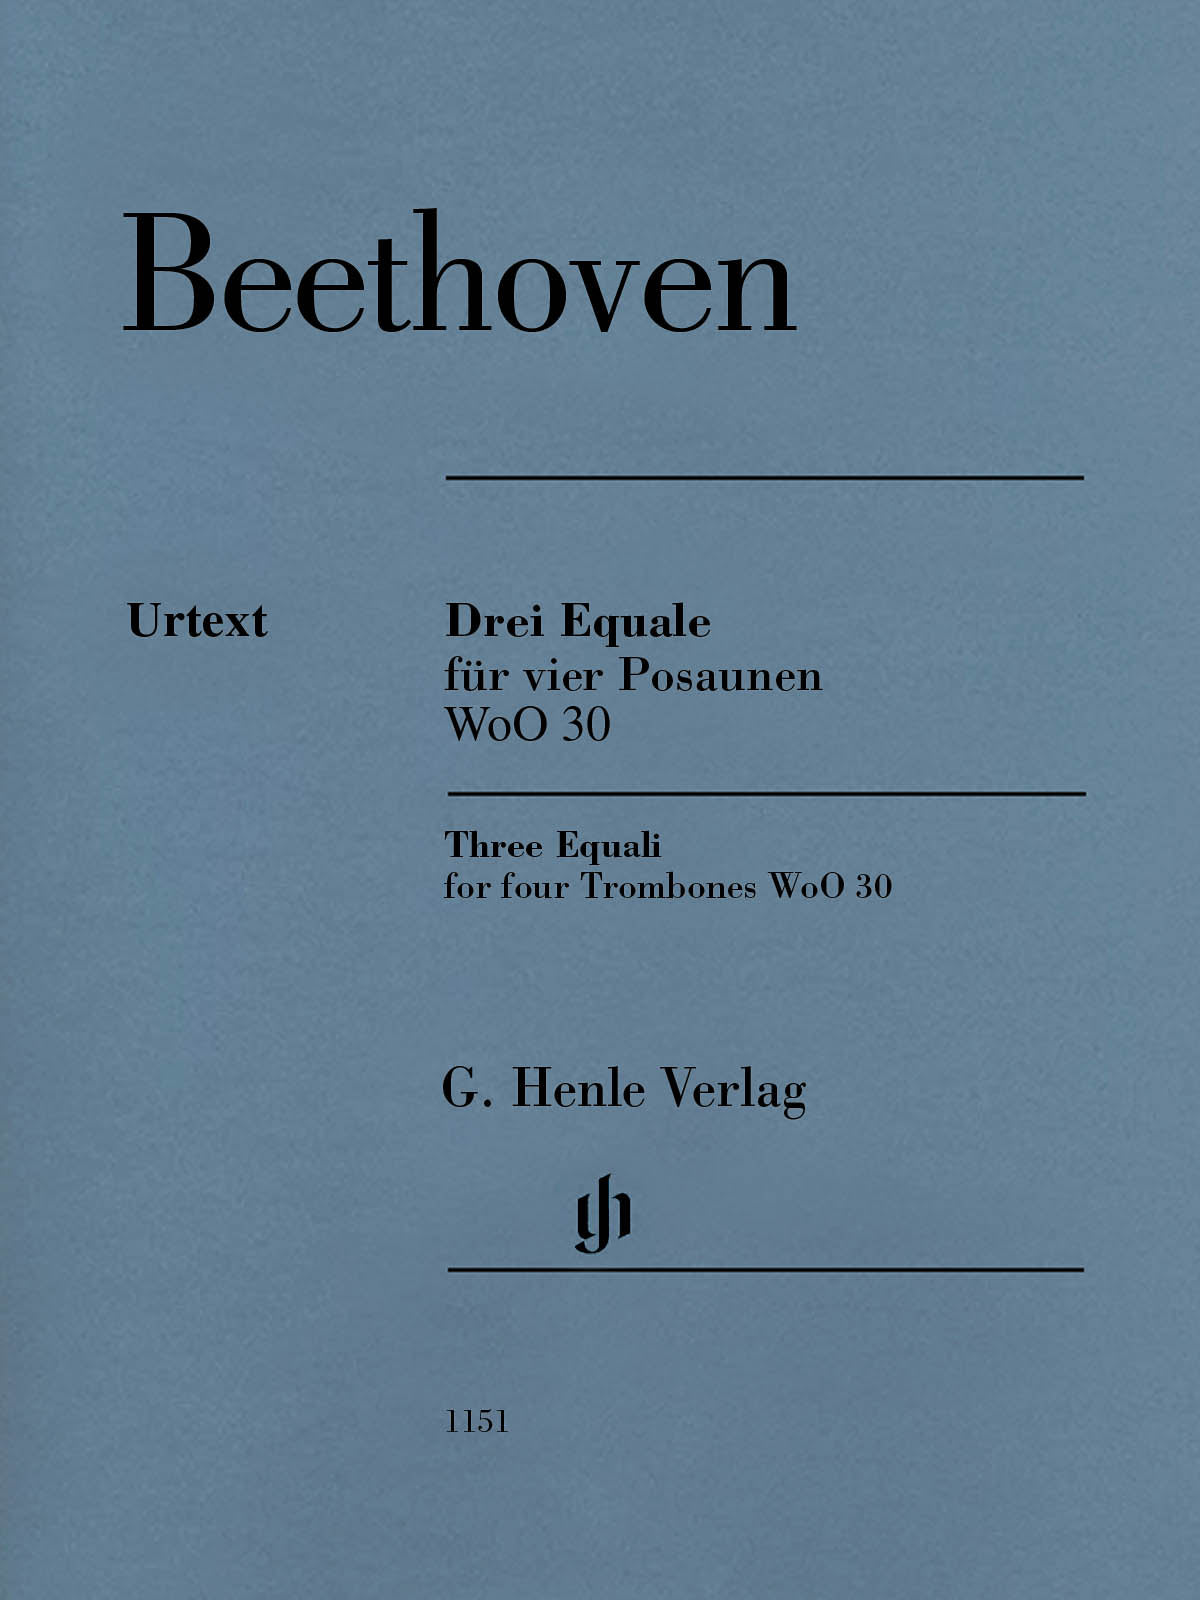 Beethoven: Three Equali for Four Trombones, WoO 30